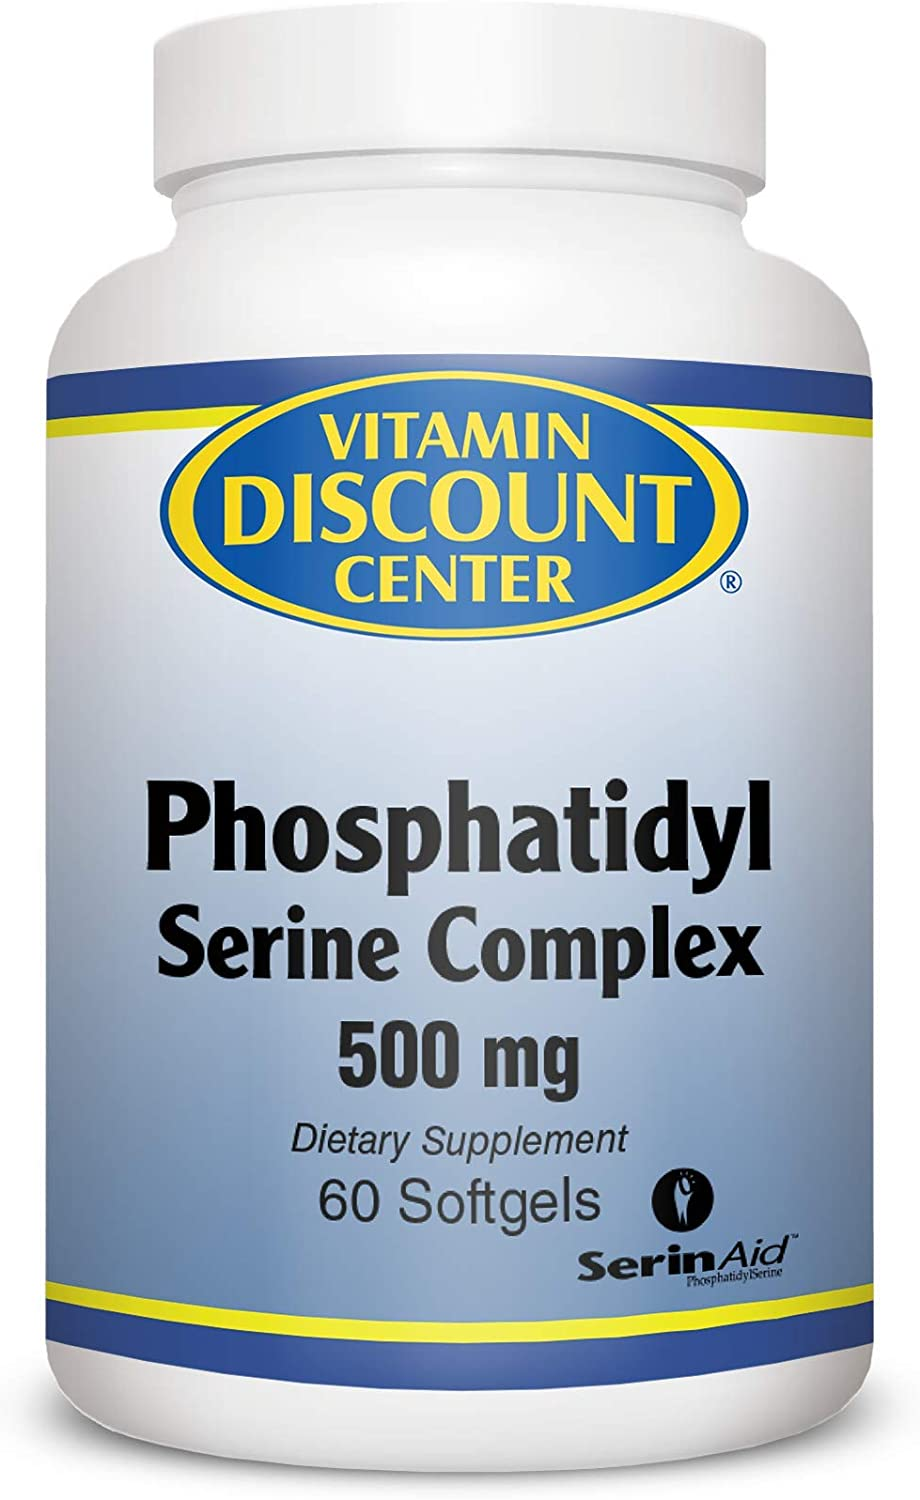 Vitamin Discount Center, Phosphatidyl Serine Complex 500 mg, 60 Softgels 2 Pack